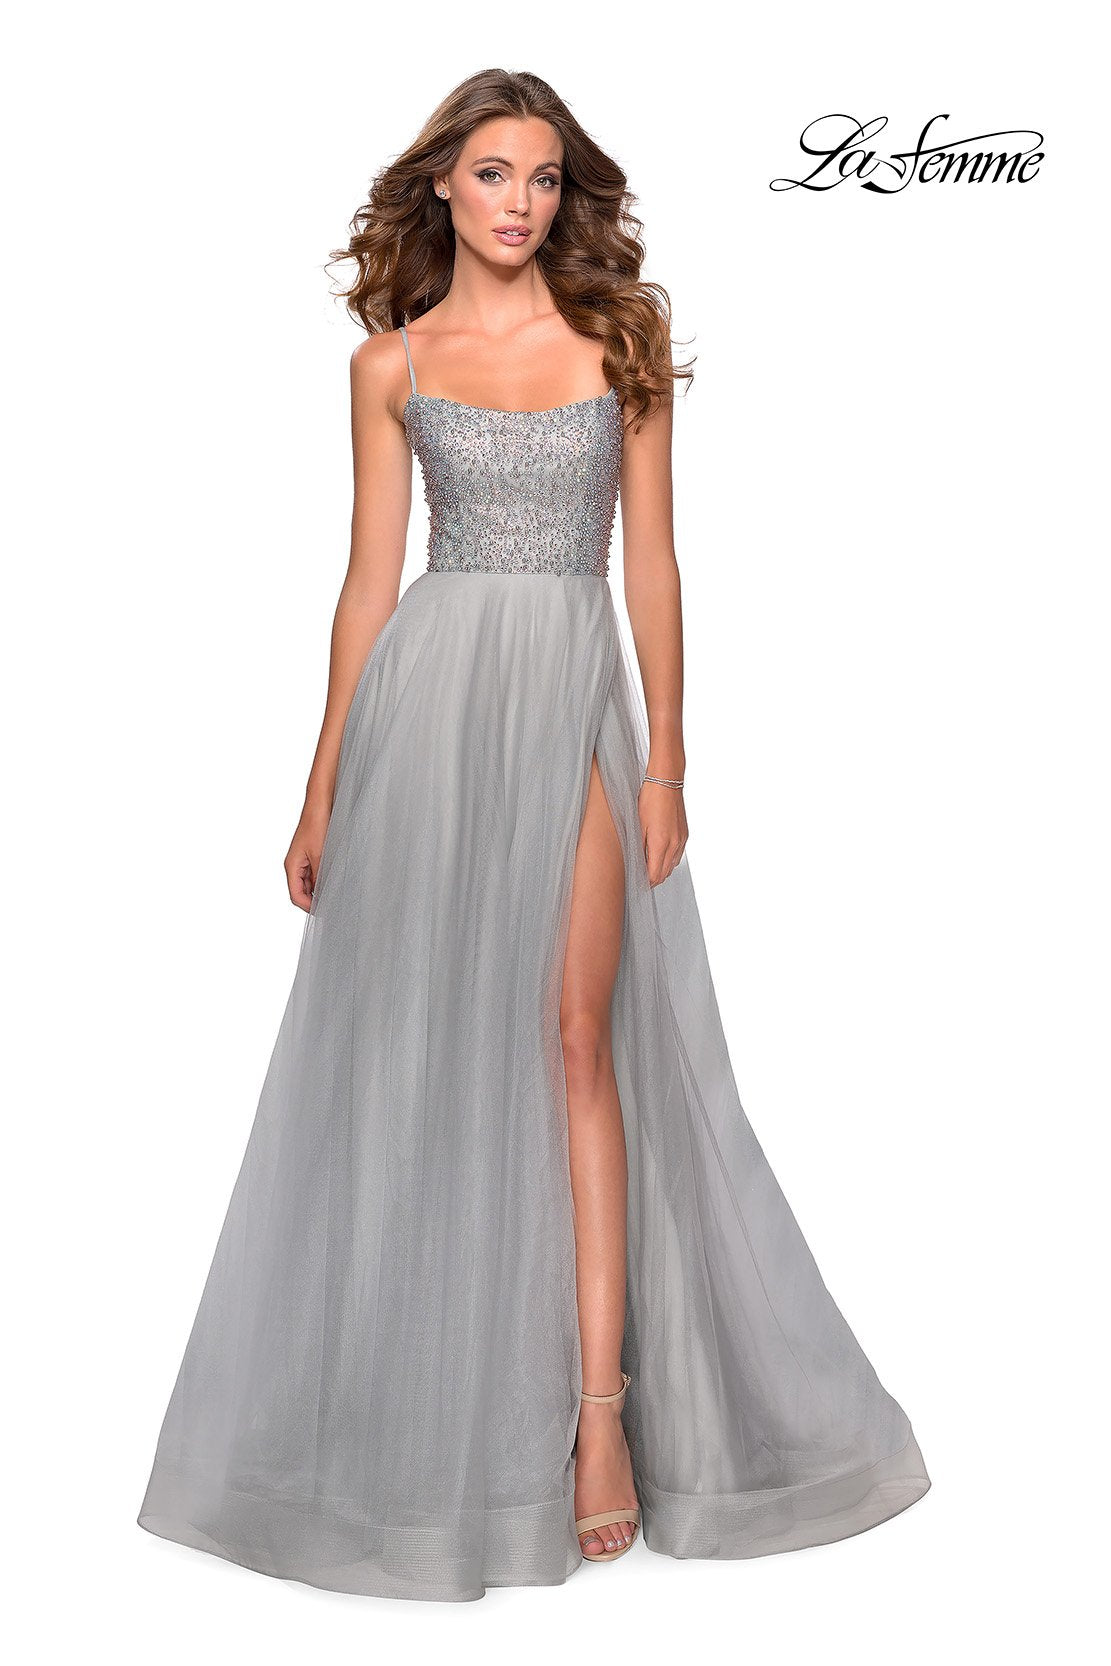 La Femme 28530 prom dress images.  La Femme 28530 is available in these colors: Mauve, Nude, Pale Yellow, Silver.